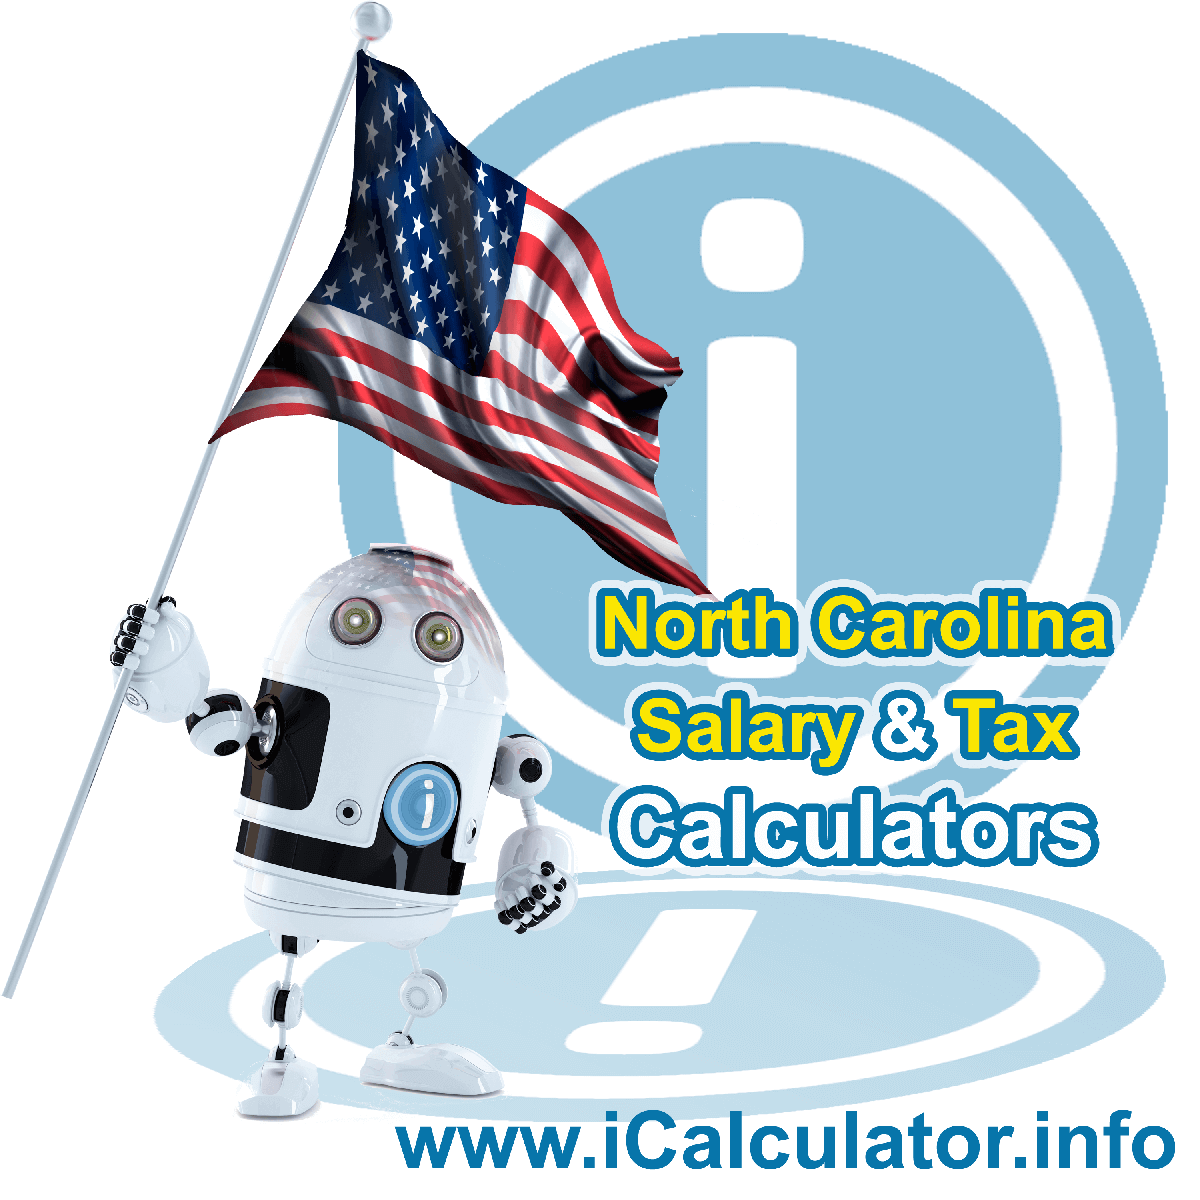 North Carolina Salary Calculator 2021 | iCalculator™ | The North Carolina Salary Calculator allows you to quickly calculate your salary after tax including North Carolina State Tax, Federal State Tax, Medicare Deductions, Social Security, Capital Gains and other income tax and salary deductions complete with supporting North Carolina state tax tables